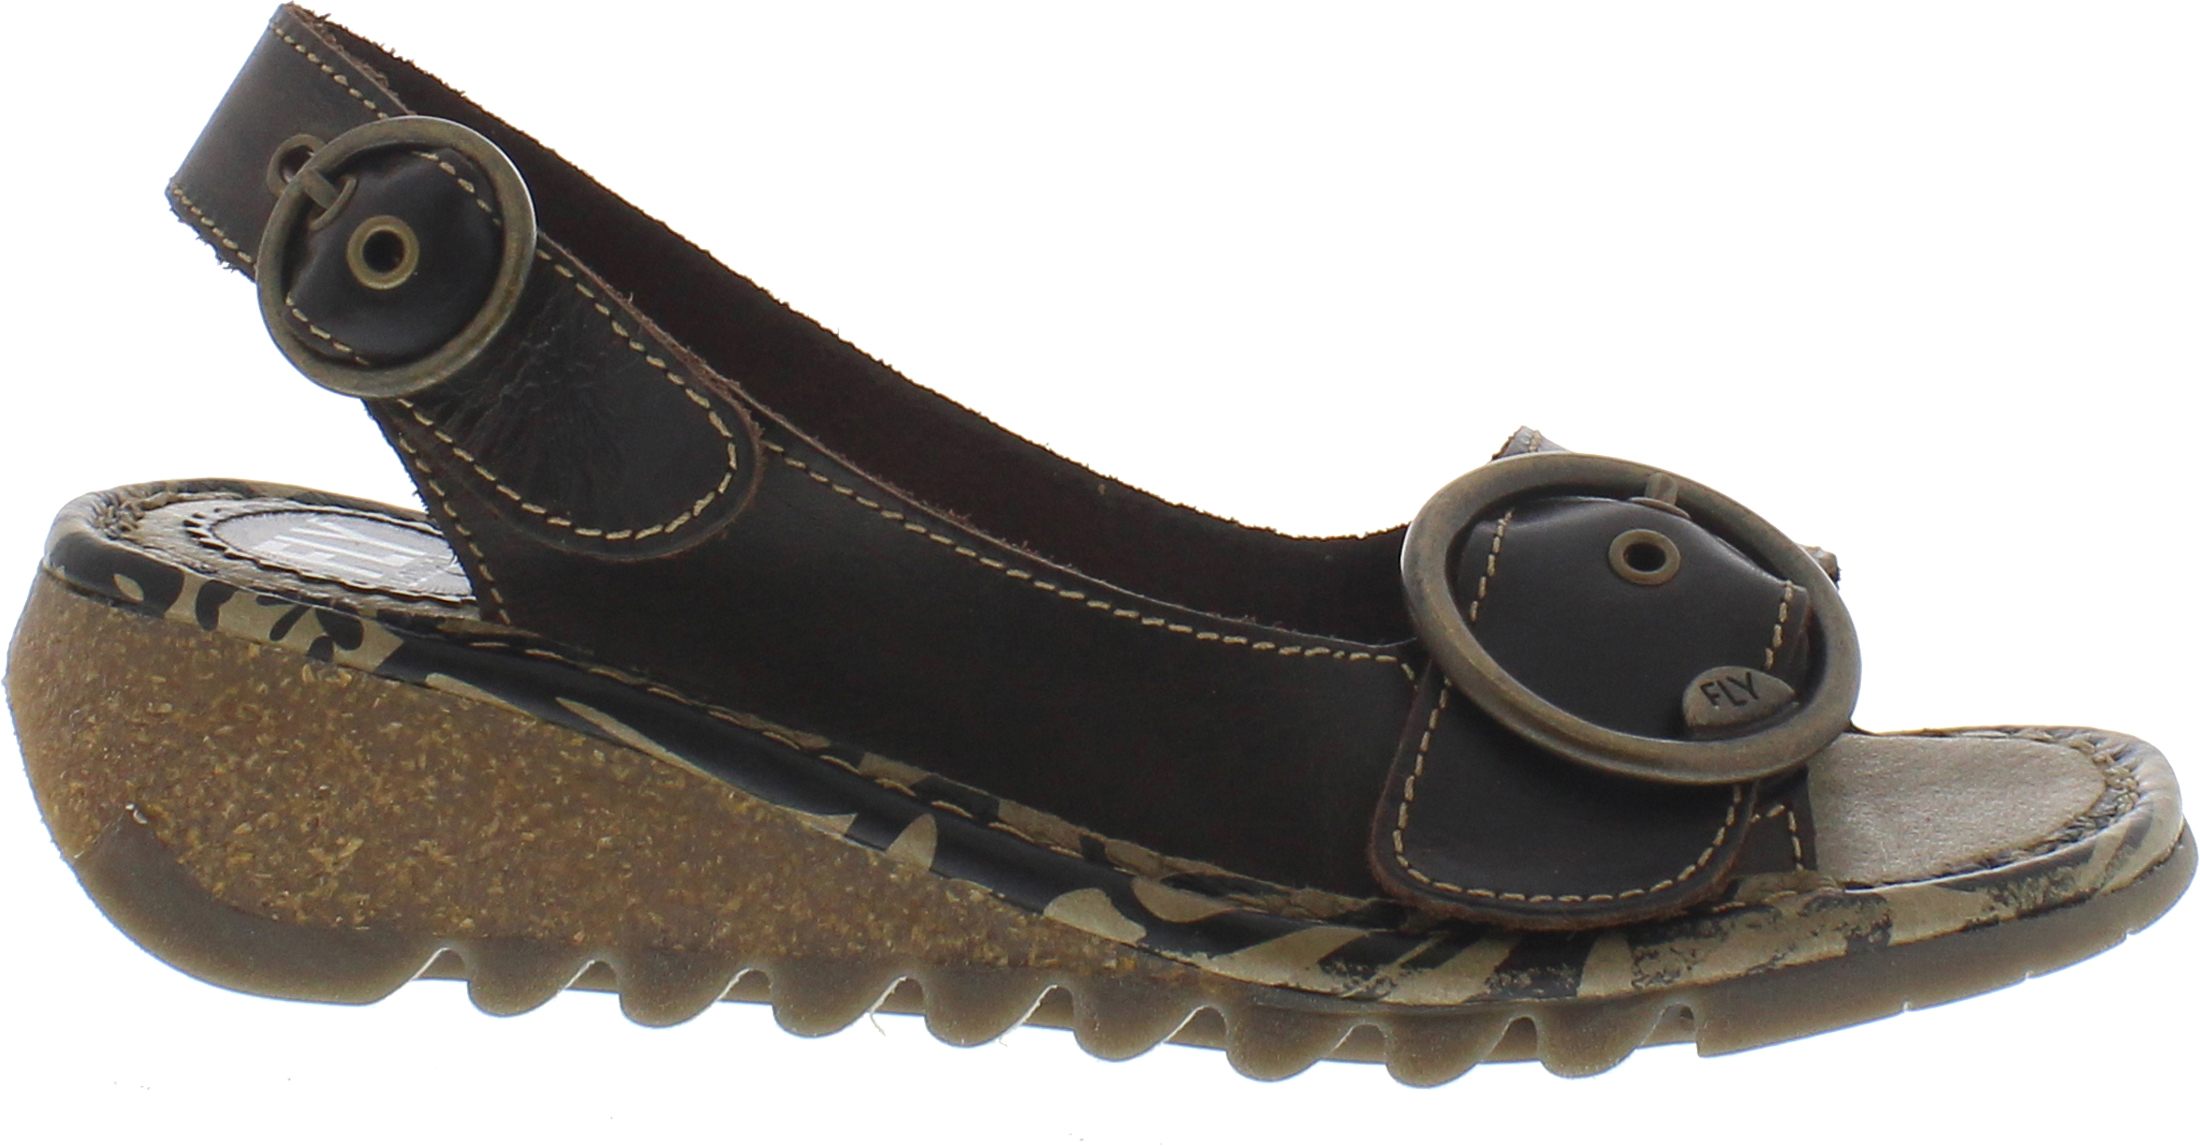 Fly-London-Women-039-s-Tram-Sandals-Adjustable-Straps-with-Metal-Buckle